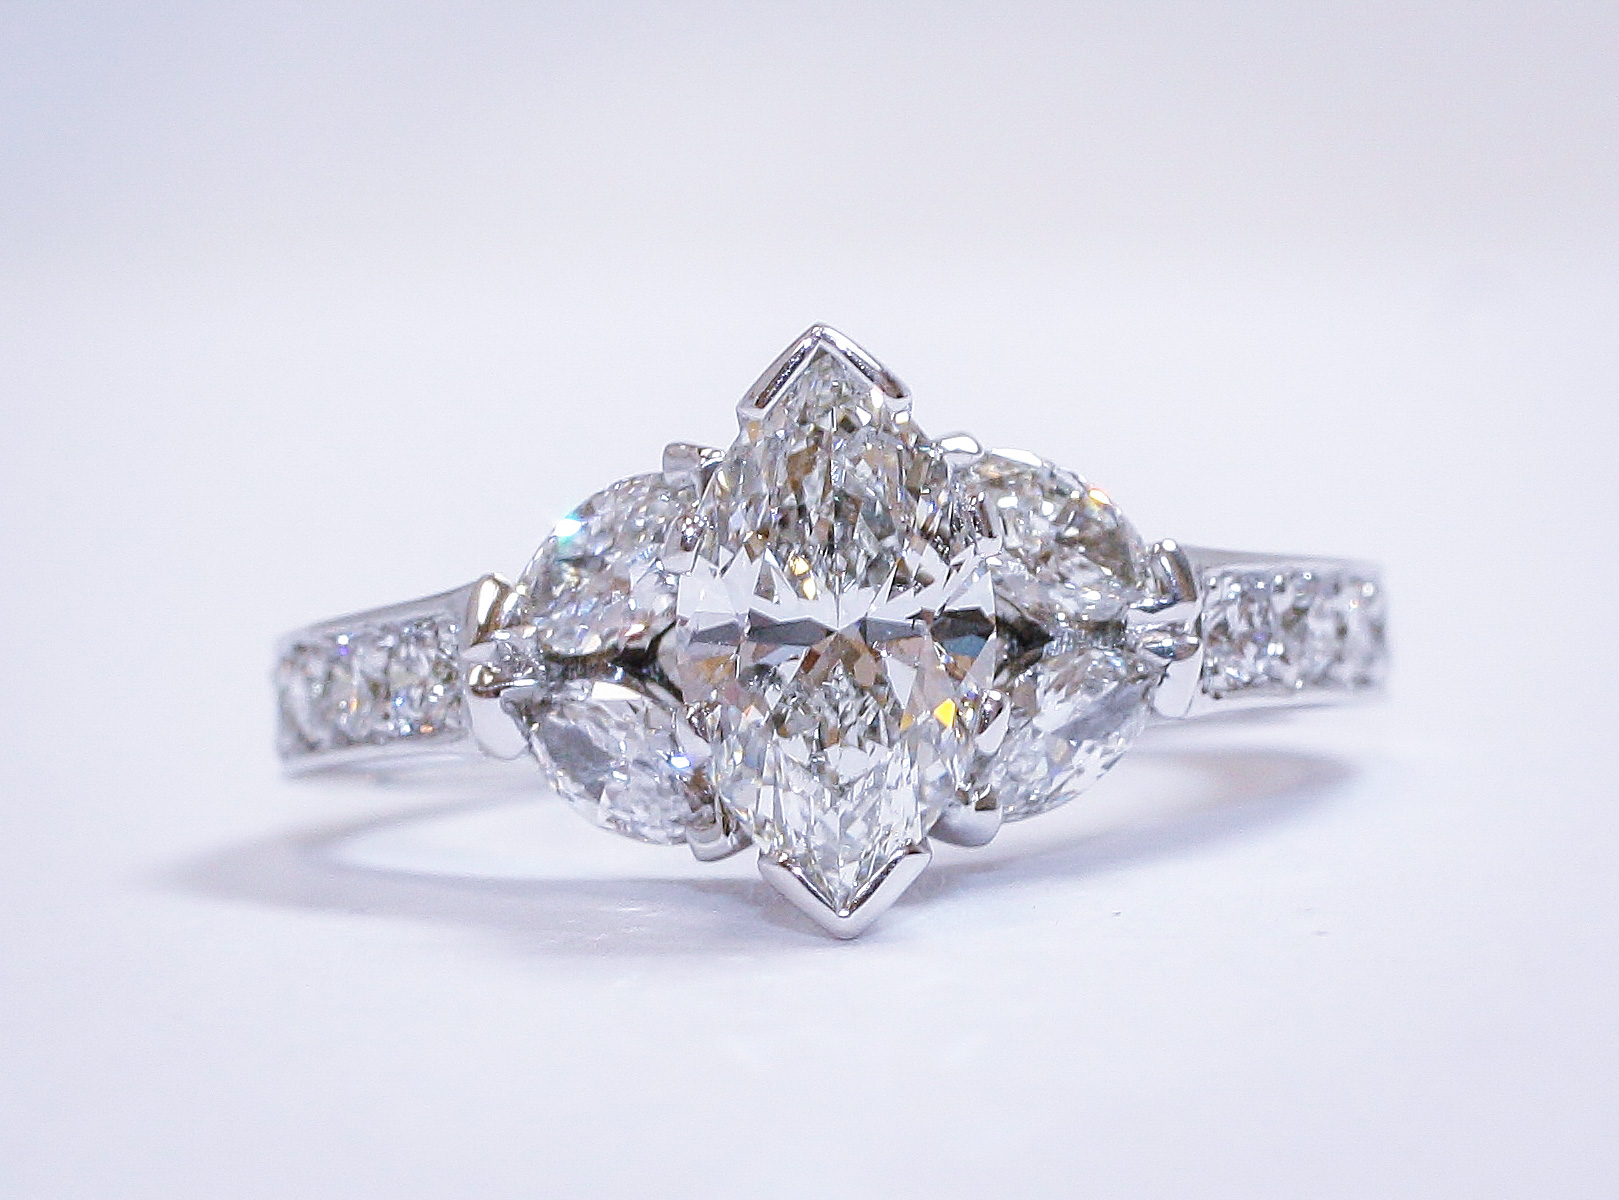 Best Way To Sell Diamond Jewelry